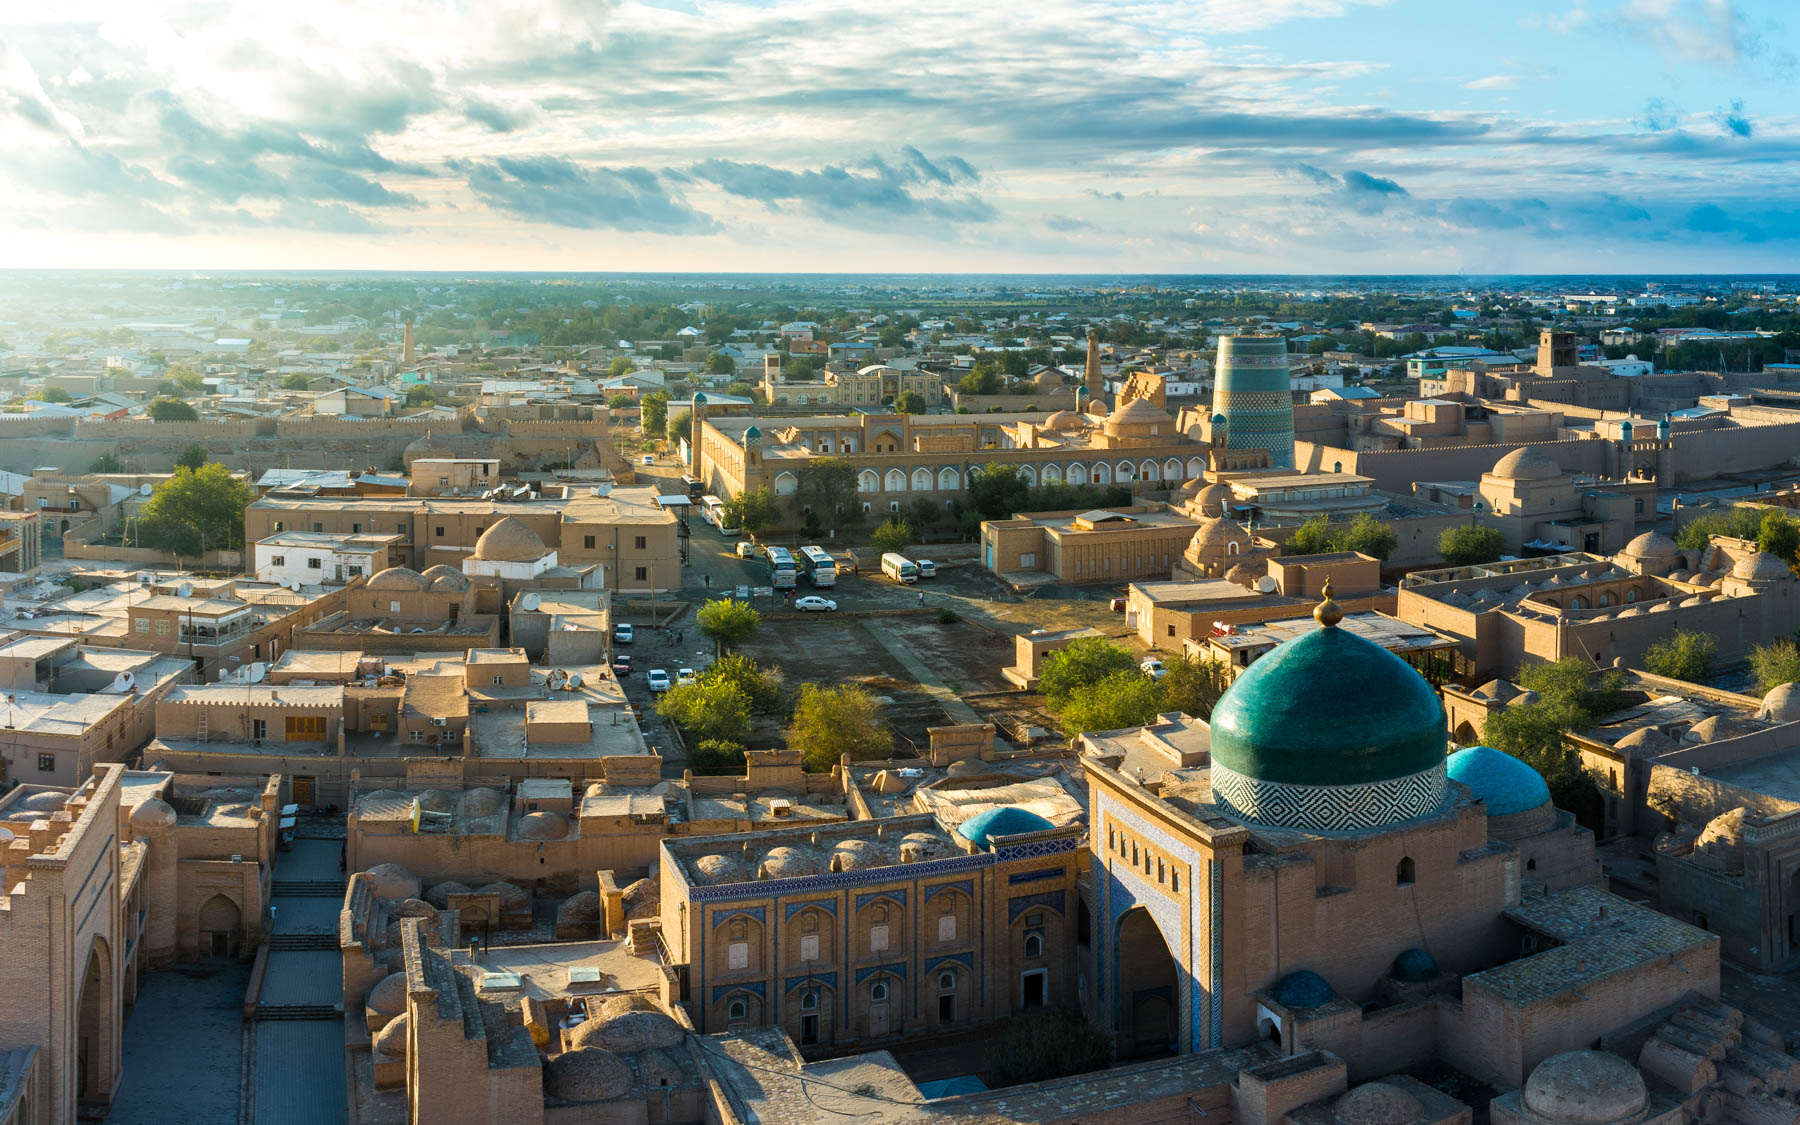 Two week Uzbekistan itinerary - Khiva old town at sunset in Uzbekistan - Lost With Purpose